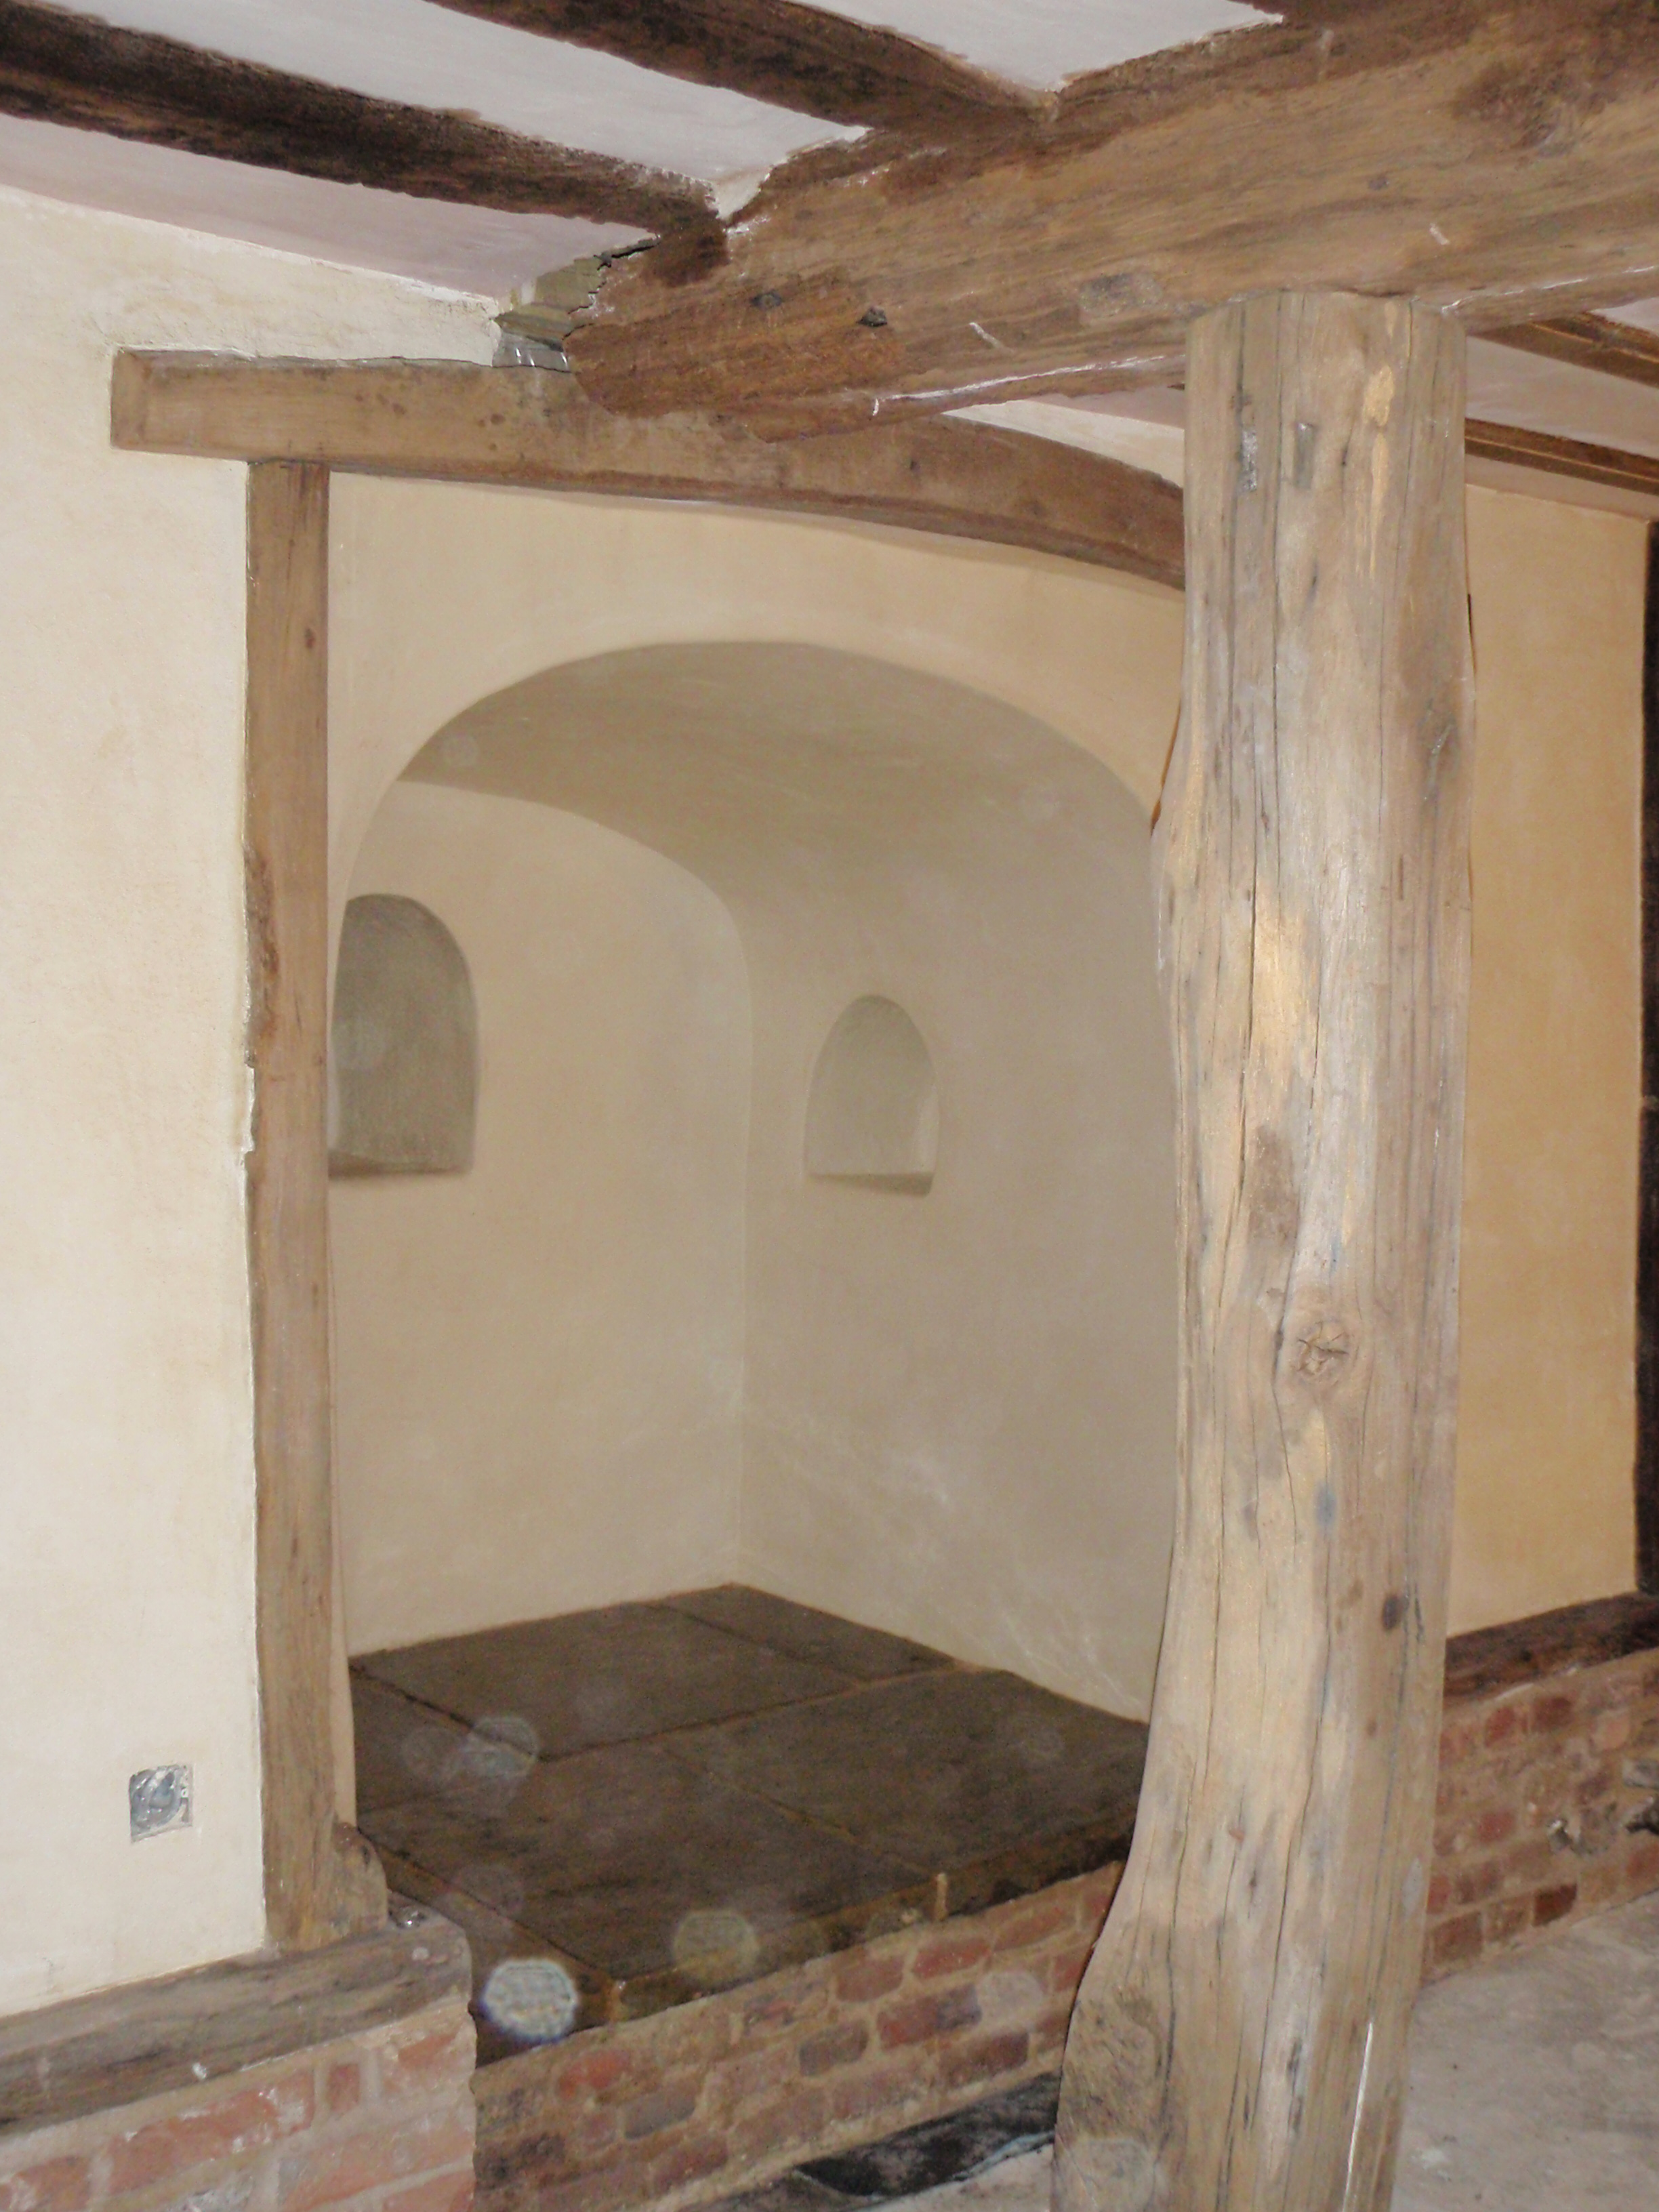 lime-rendered-family-chapel-found-within-a-wall.jpg